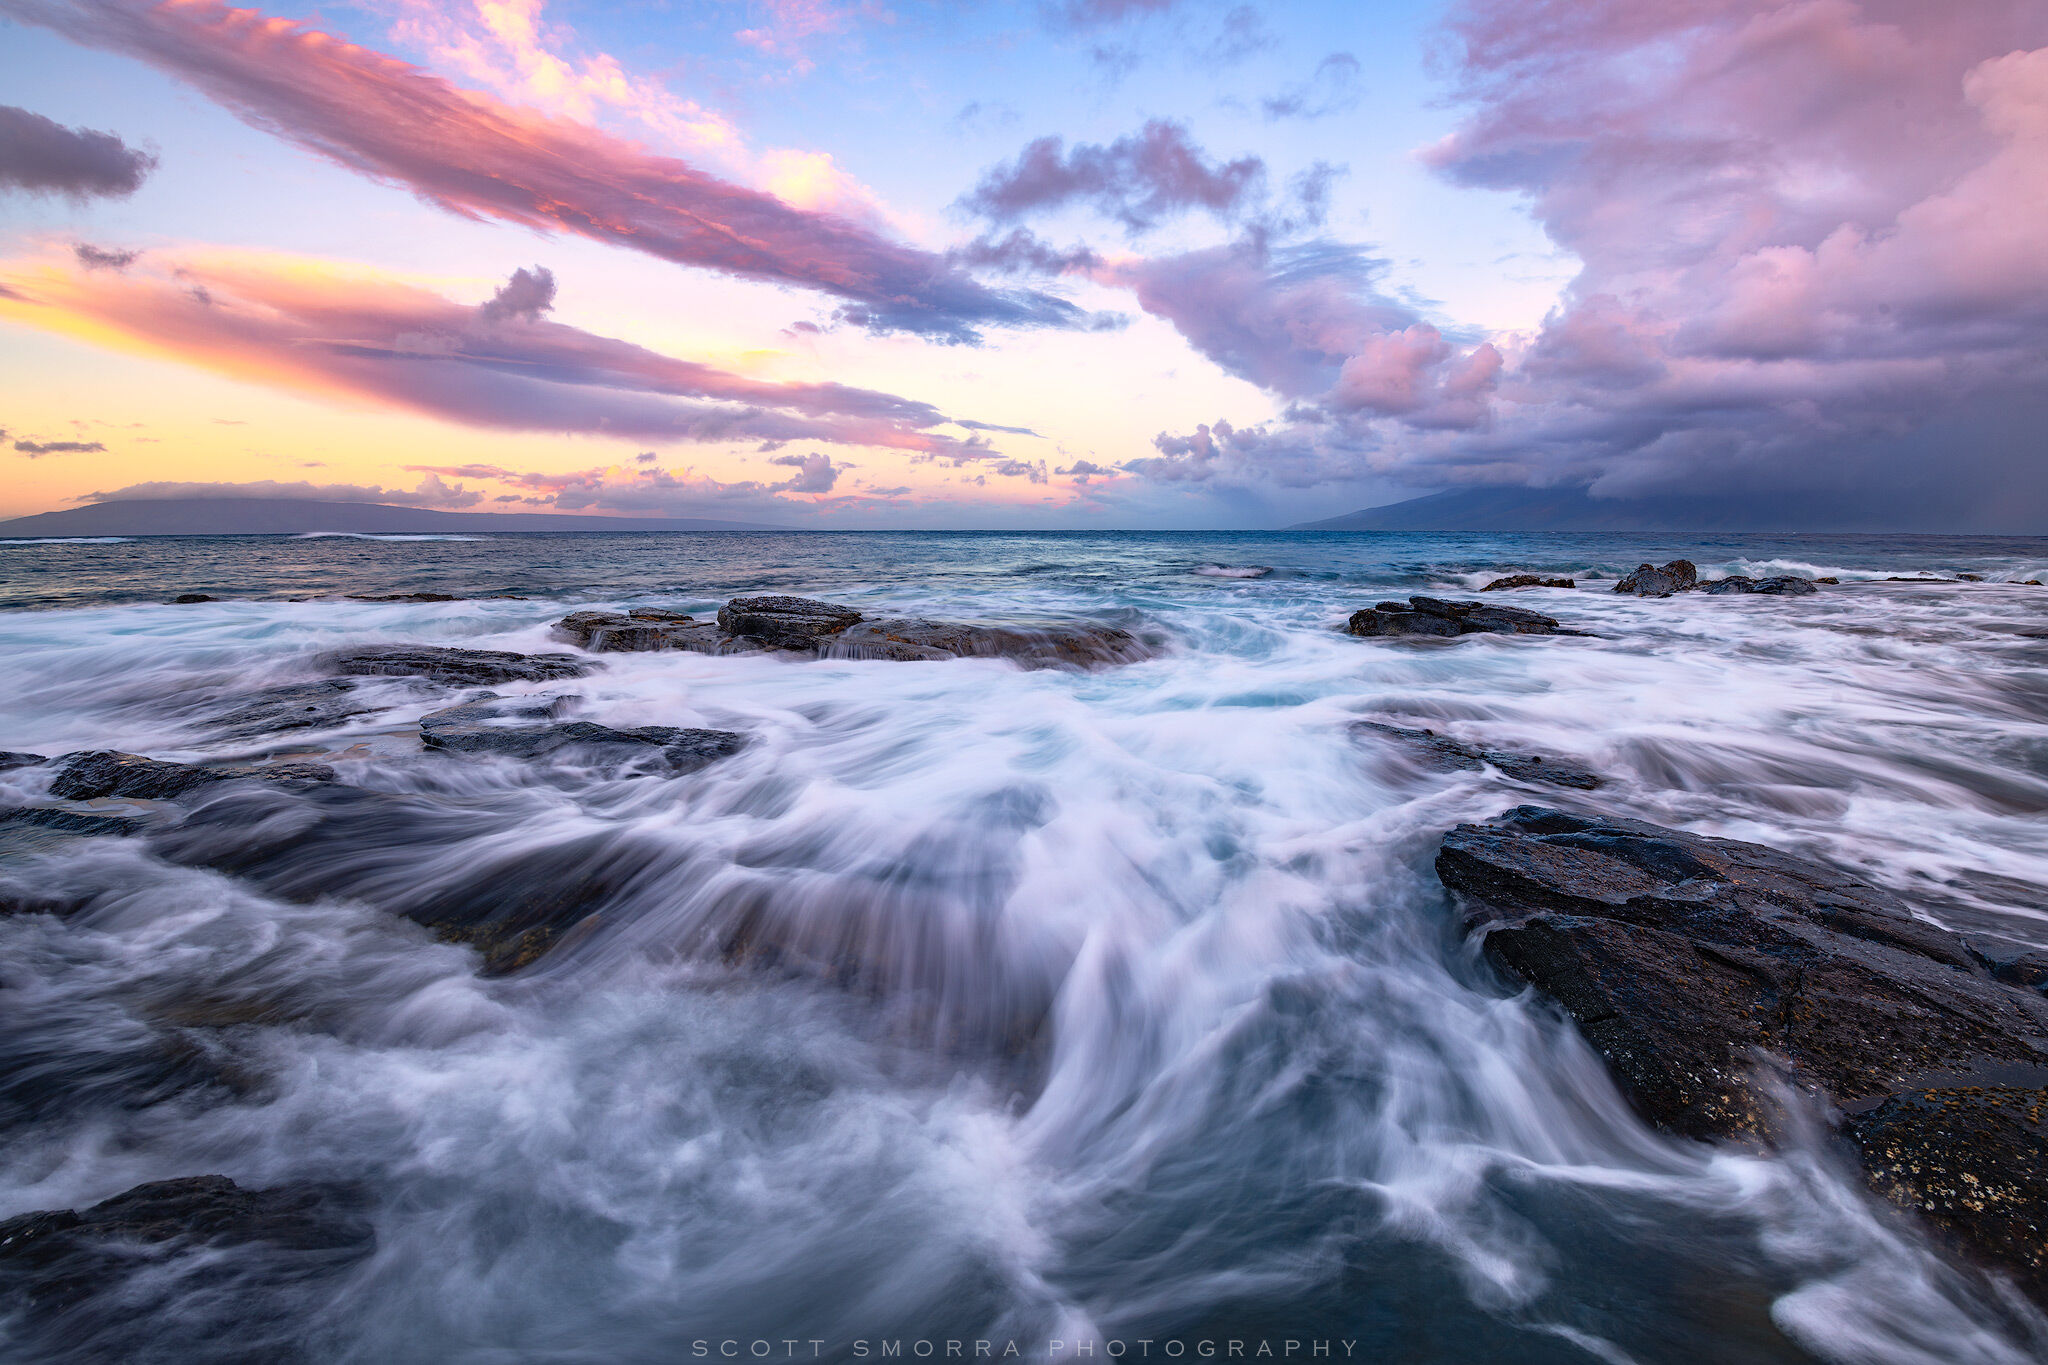 Fine Art Limited Edition of 100 - Sunrise light illuminates high clouds above crashing waves near Kapalua, Maui, Hawaii.  The...